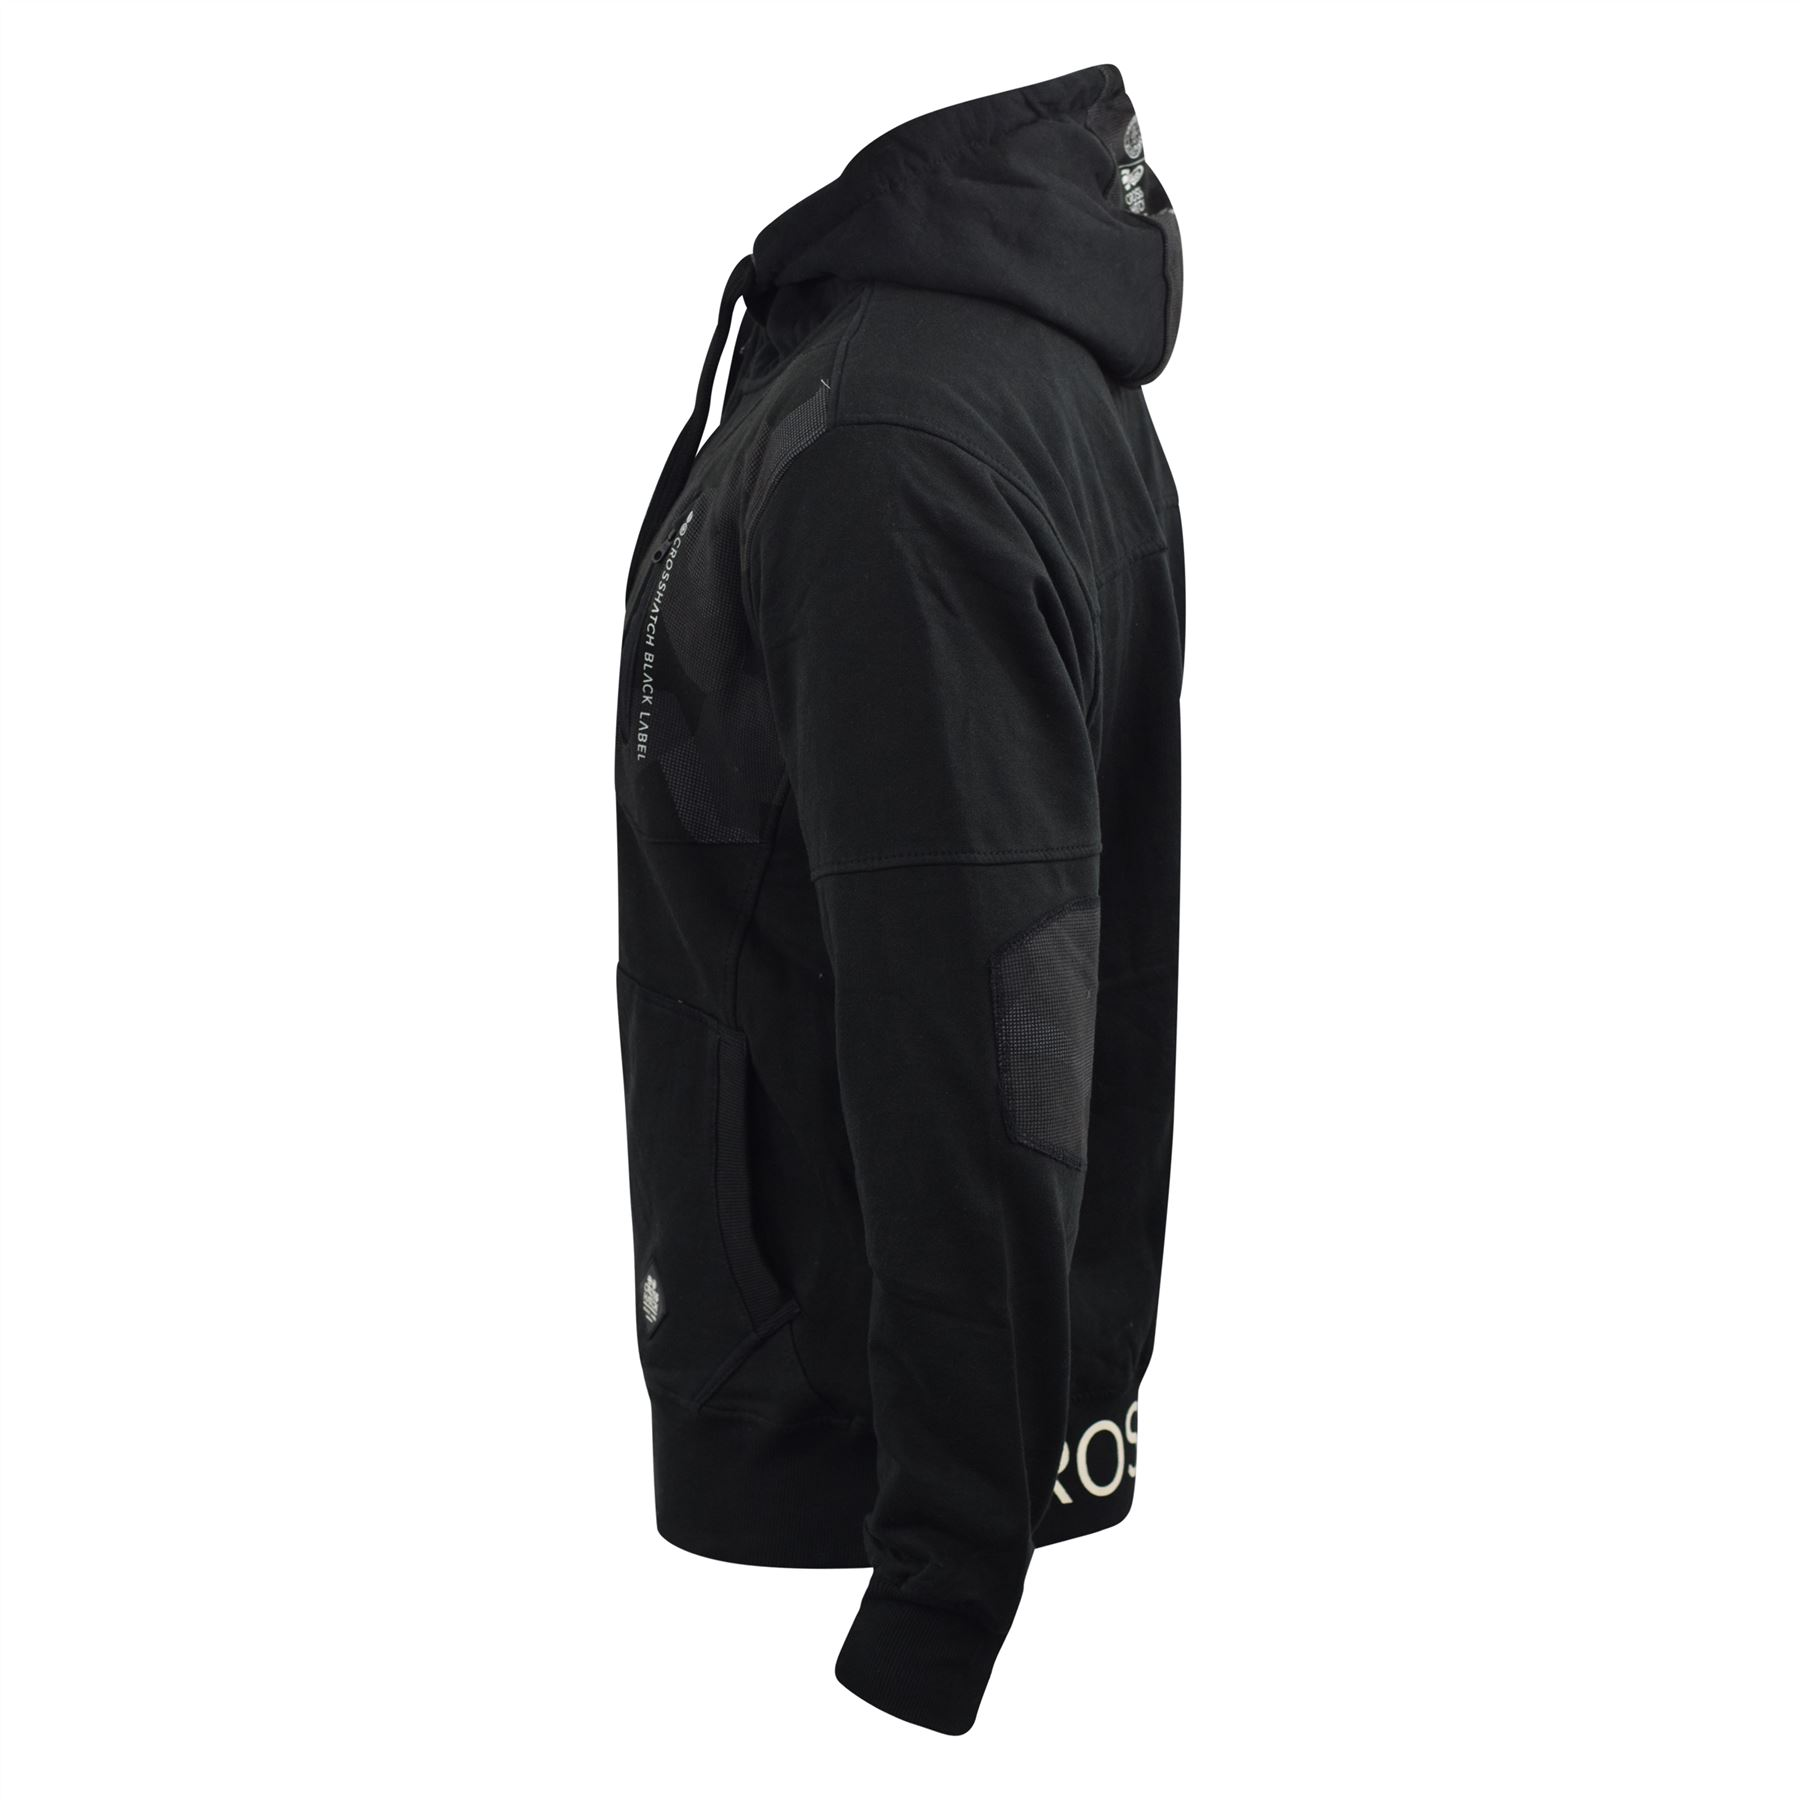 Mens-Hoodie-Crosshatch-Full-Zip-Sweatshirt-Hooded-Jumper-Top-Pullover-Radzim thumbnail 6